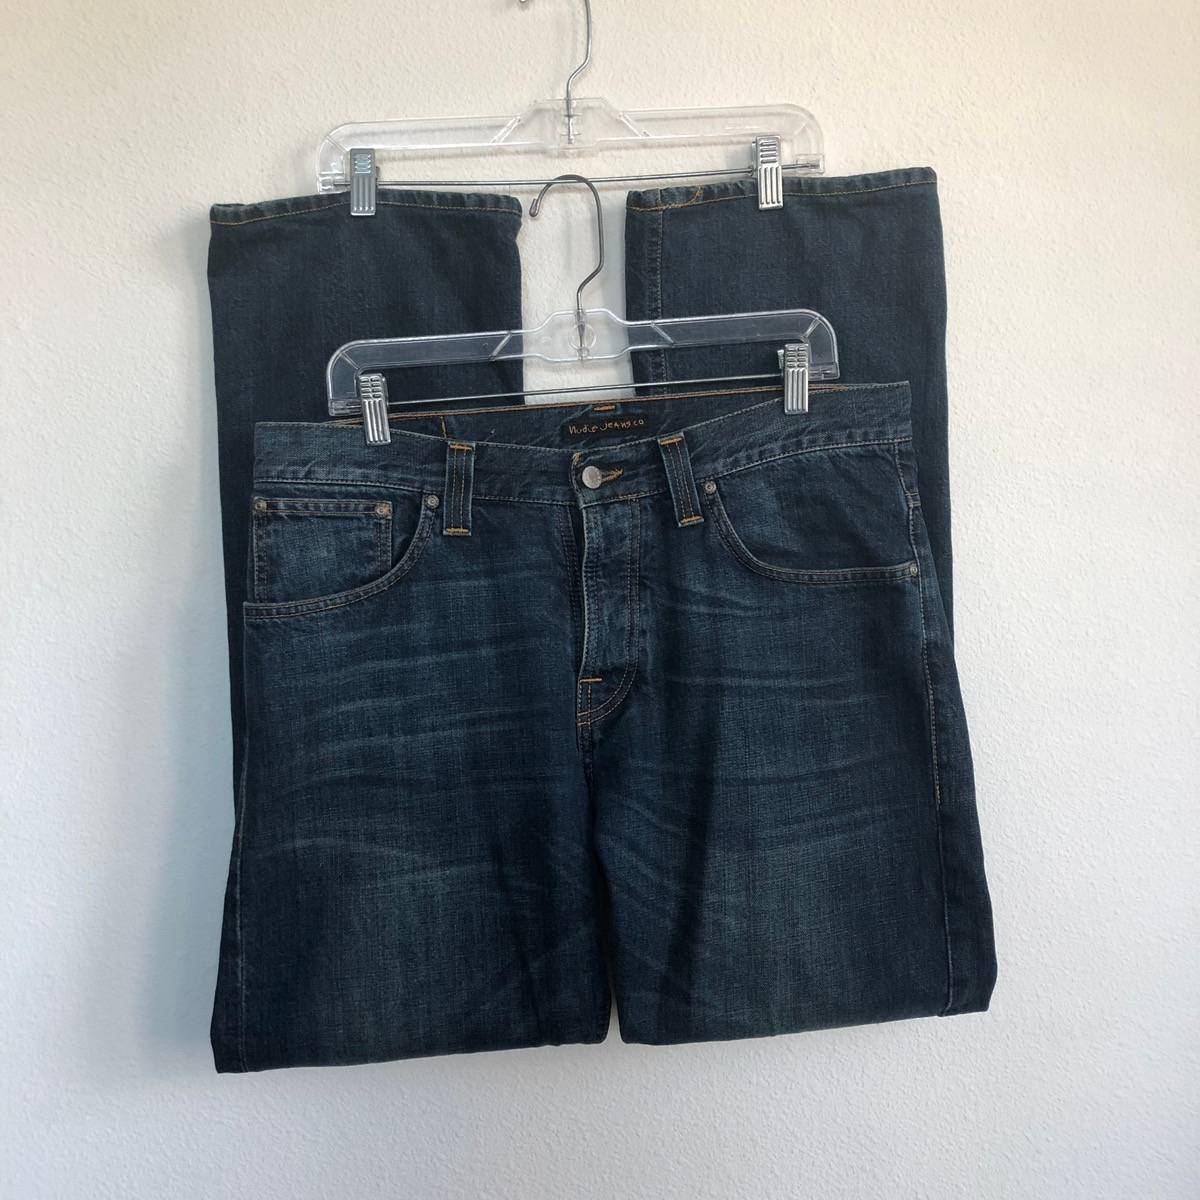 offer discounts hot sale online cheap for discount Nudie Jeans Nudie Reg Alf New Used De Luxe Denim Jeans 34 | Grailed